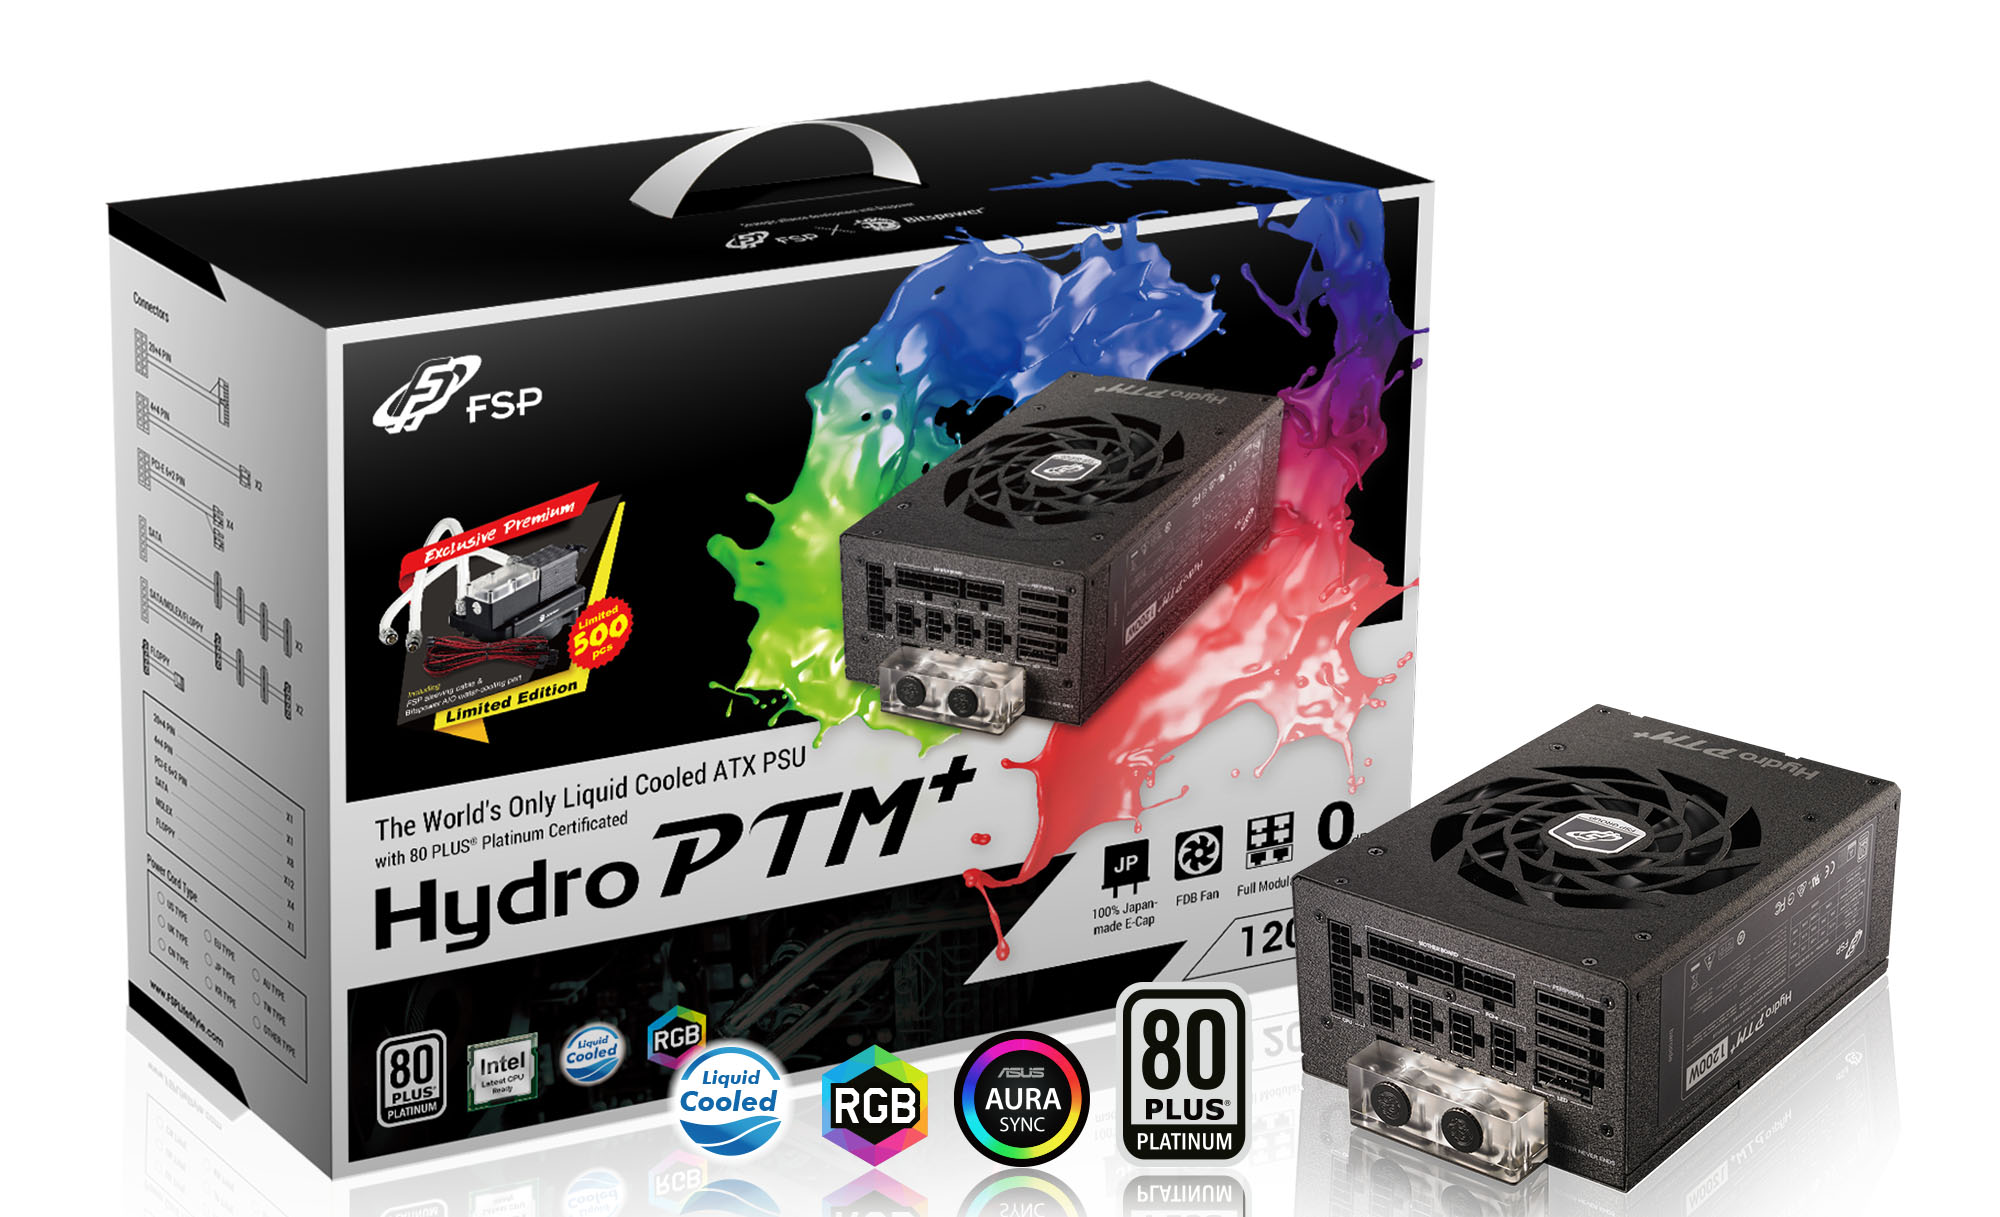 Fortron HYDRO PTM+ 1200W 80PLUS PLATINUM, modular, water cooling (+ LIMITED EDITION gifts)